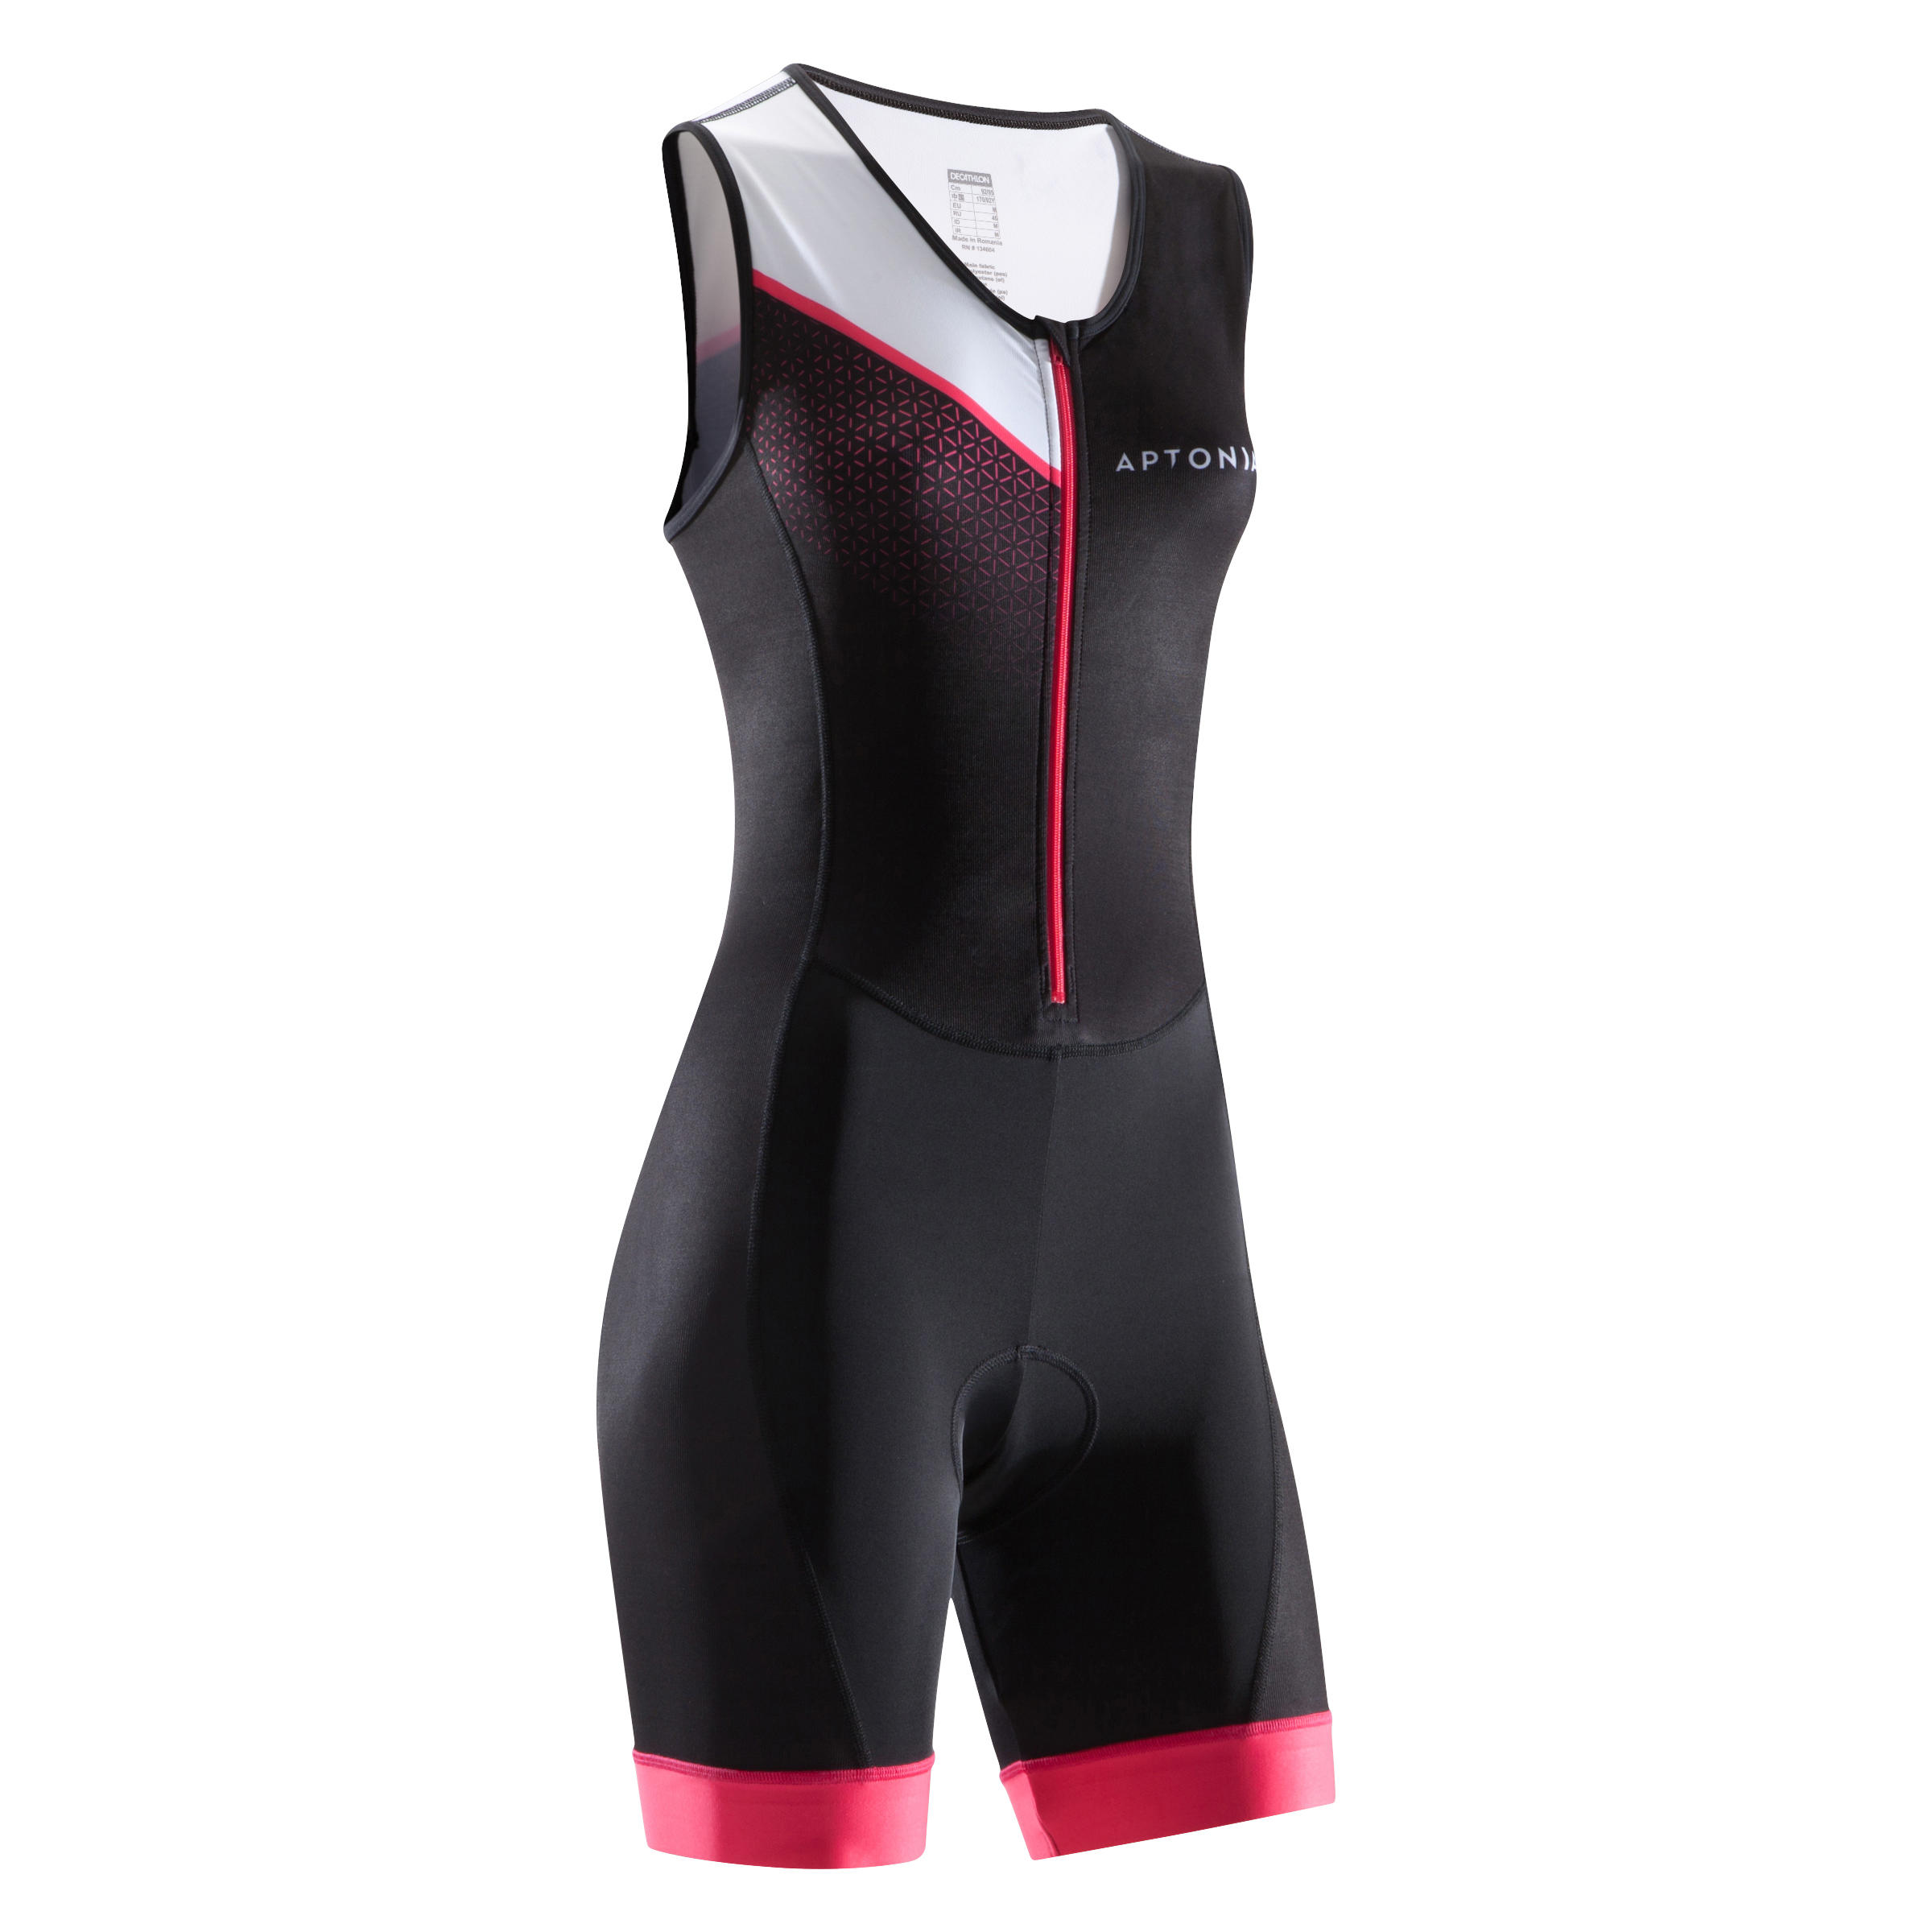 SD TRIATHLON WOMEN'S SLEEVELESS TRISUIT FRONT ZIPPER BLACK PINK